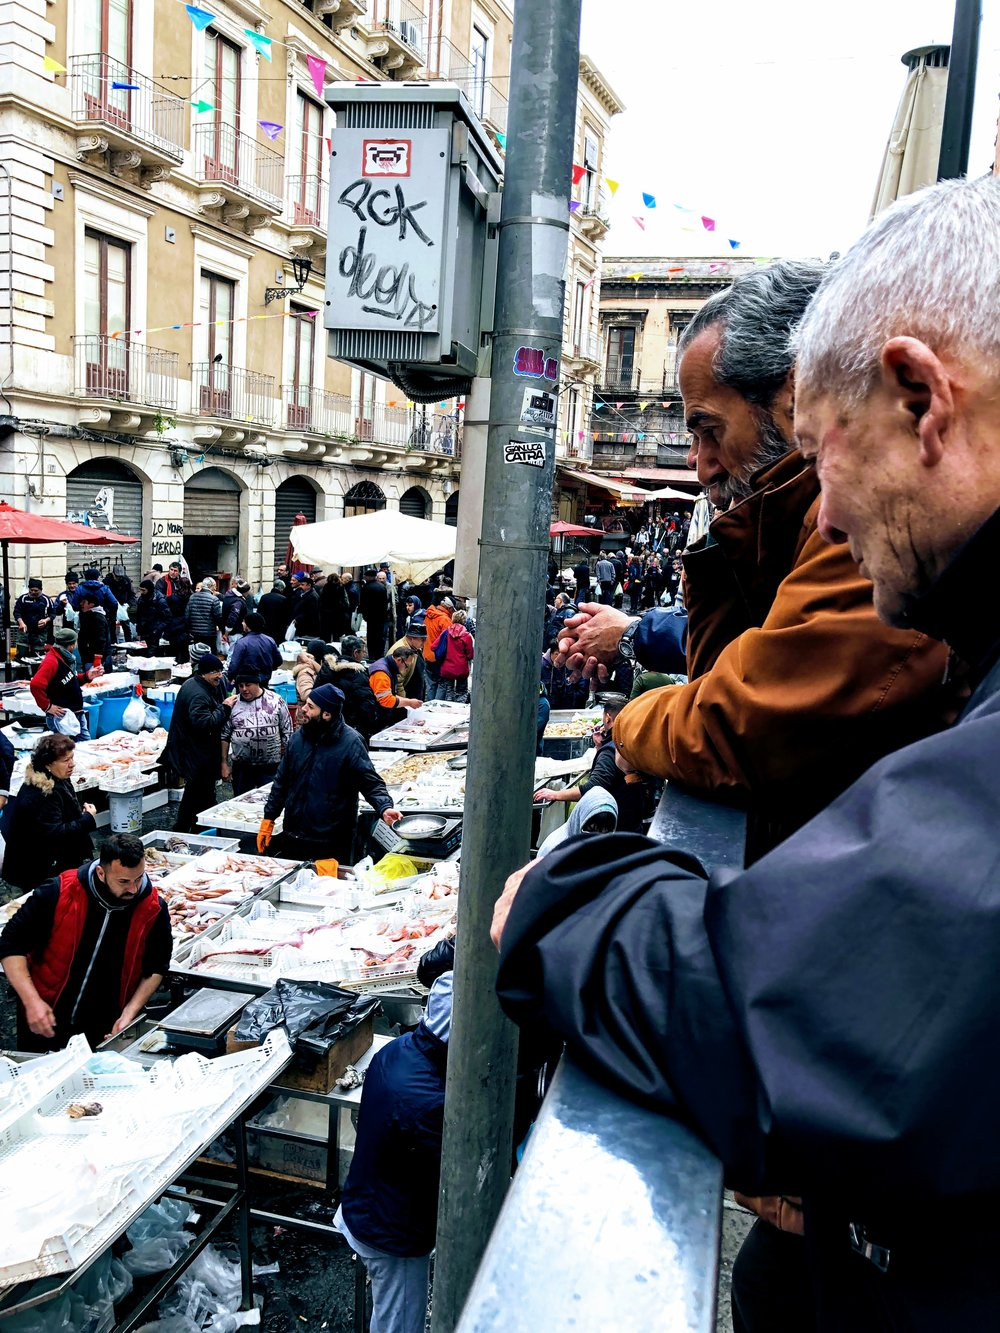 The fish market in Catania, Sicily